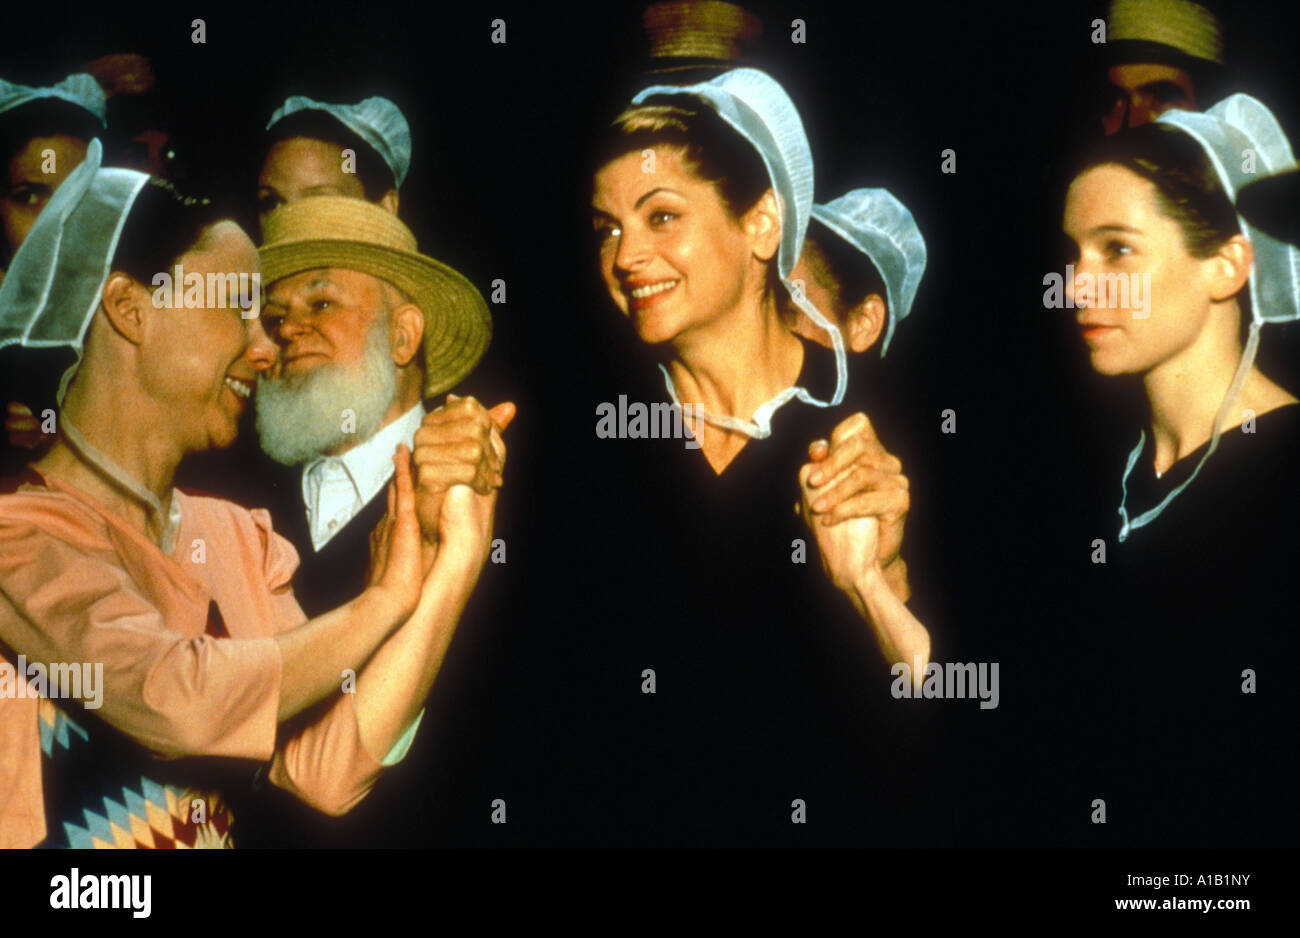 For Richer Or Poorer Year 1997 Director Bryan Spicer Kirstie Alley - Stock Image